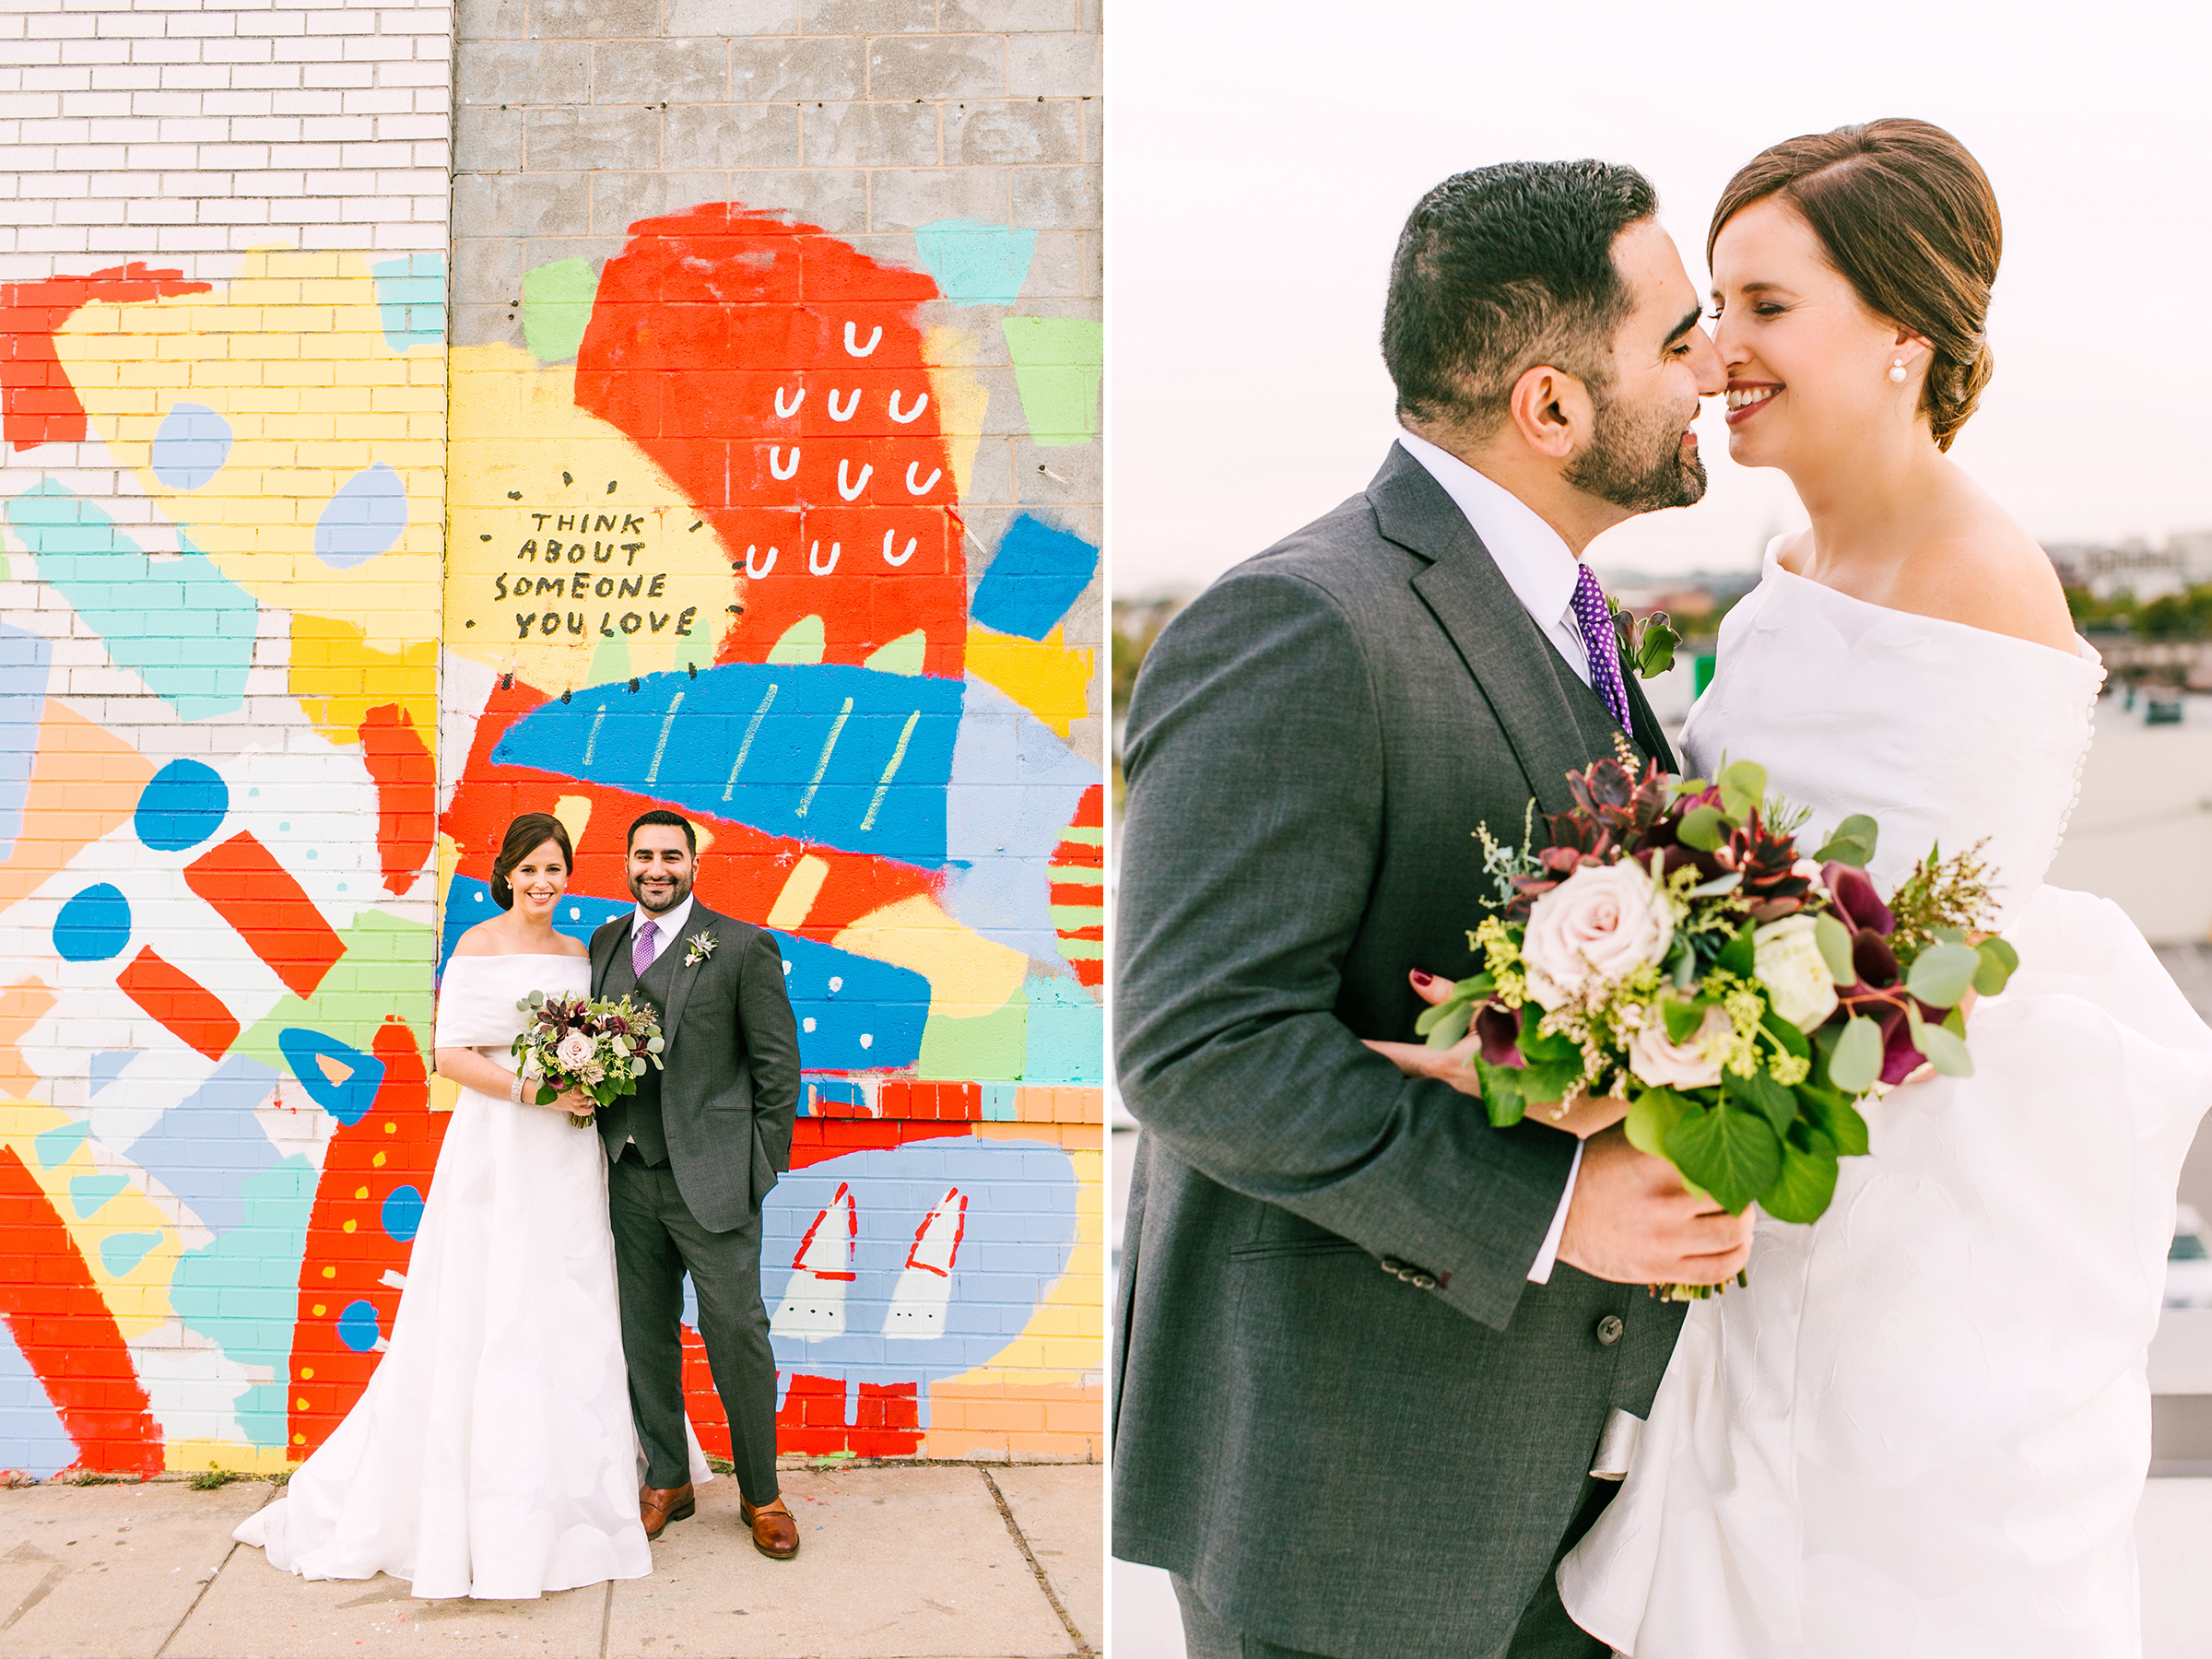 KatieStoopsPhotography-Dock5-DC wedding-washingtonian31.jpg